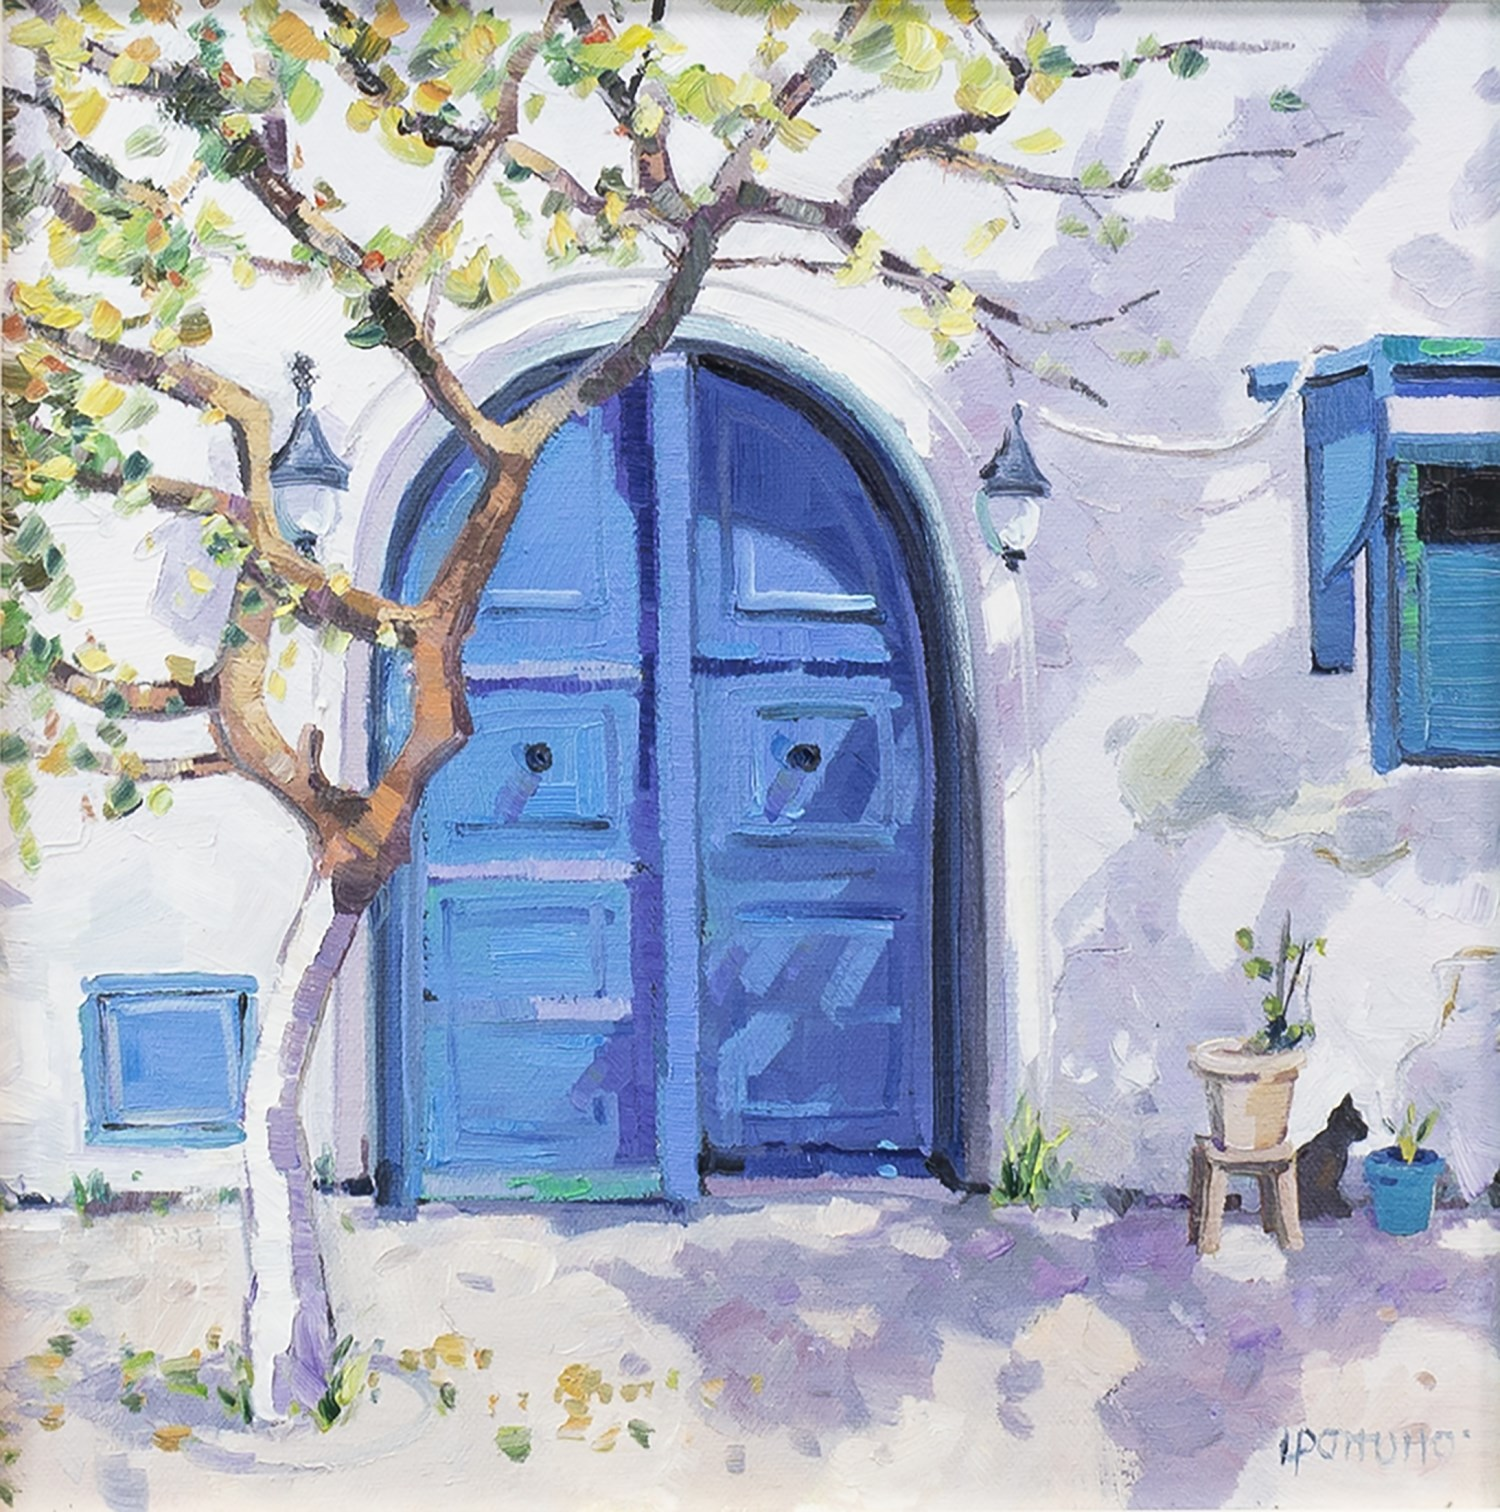 Lot 88 - THE BLUE DOOR, AN OIL ON CANVAS BY LIN PATTULLO